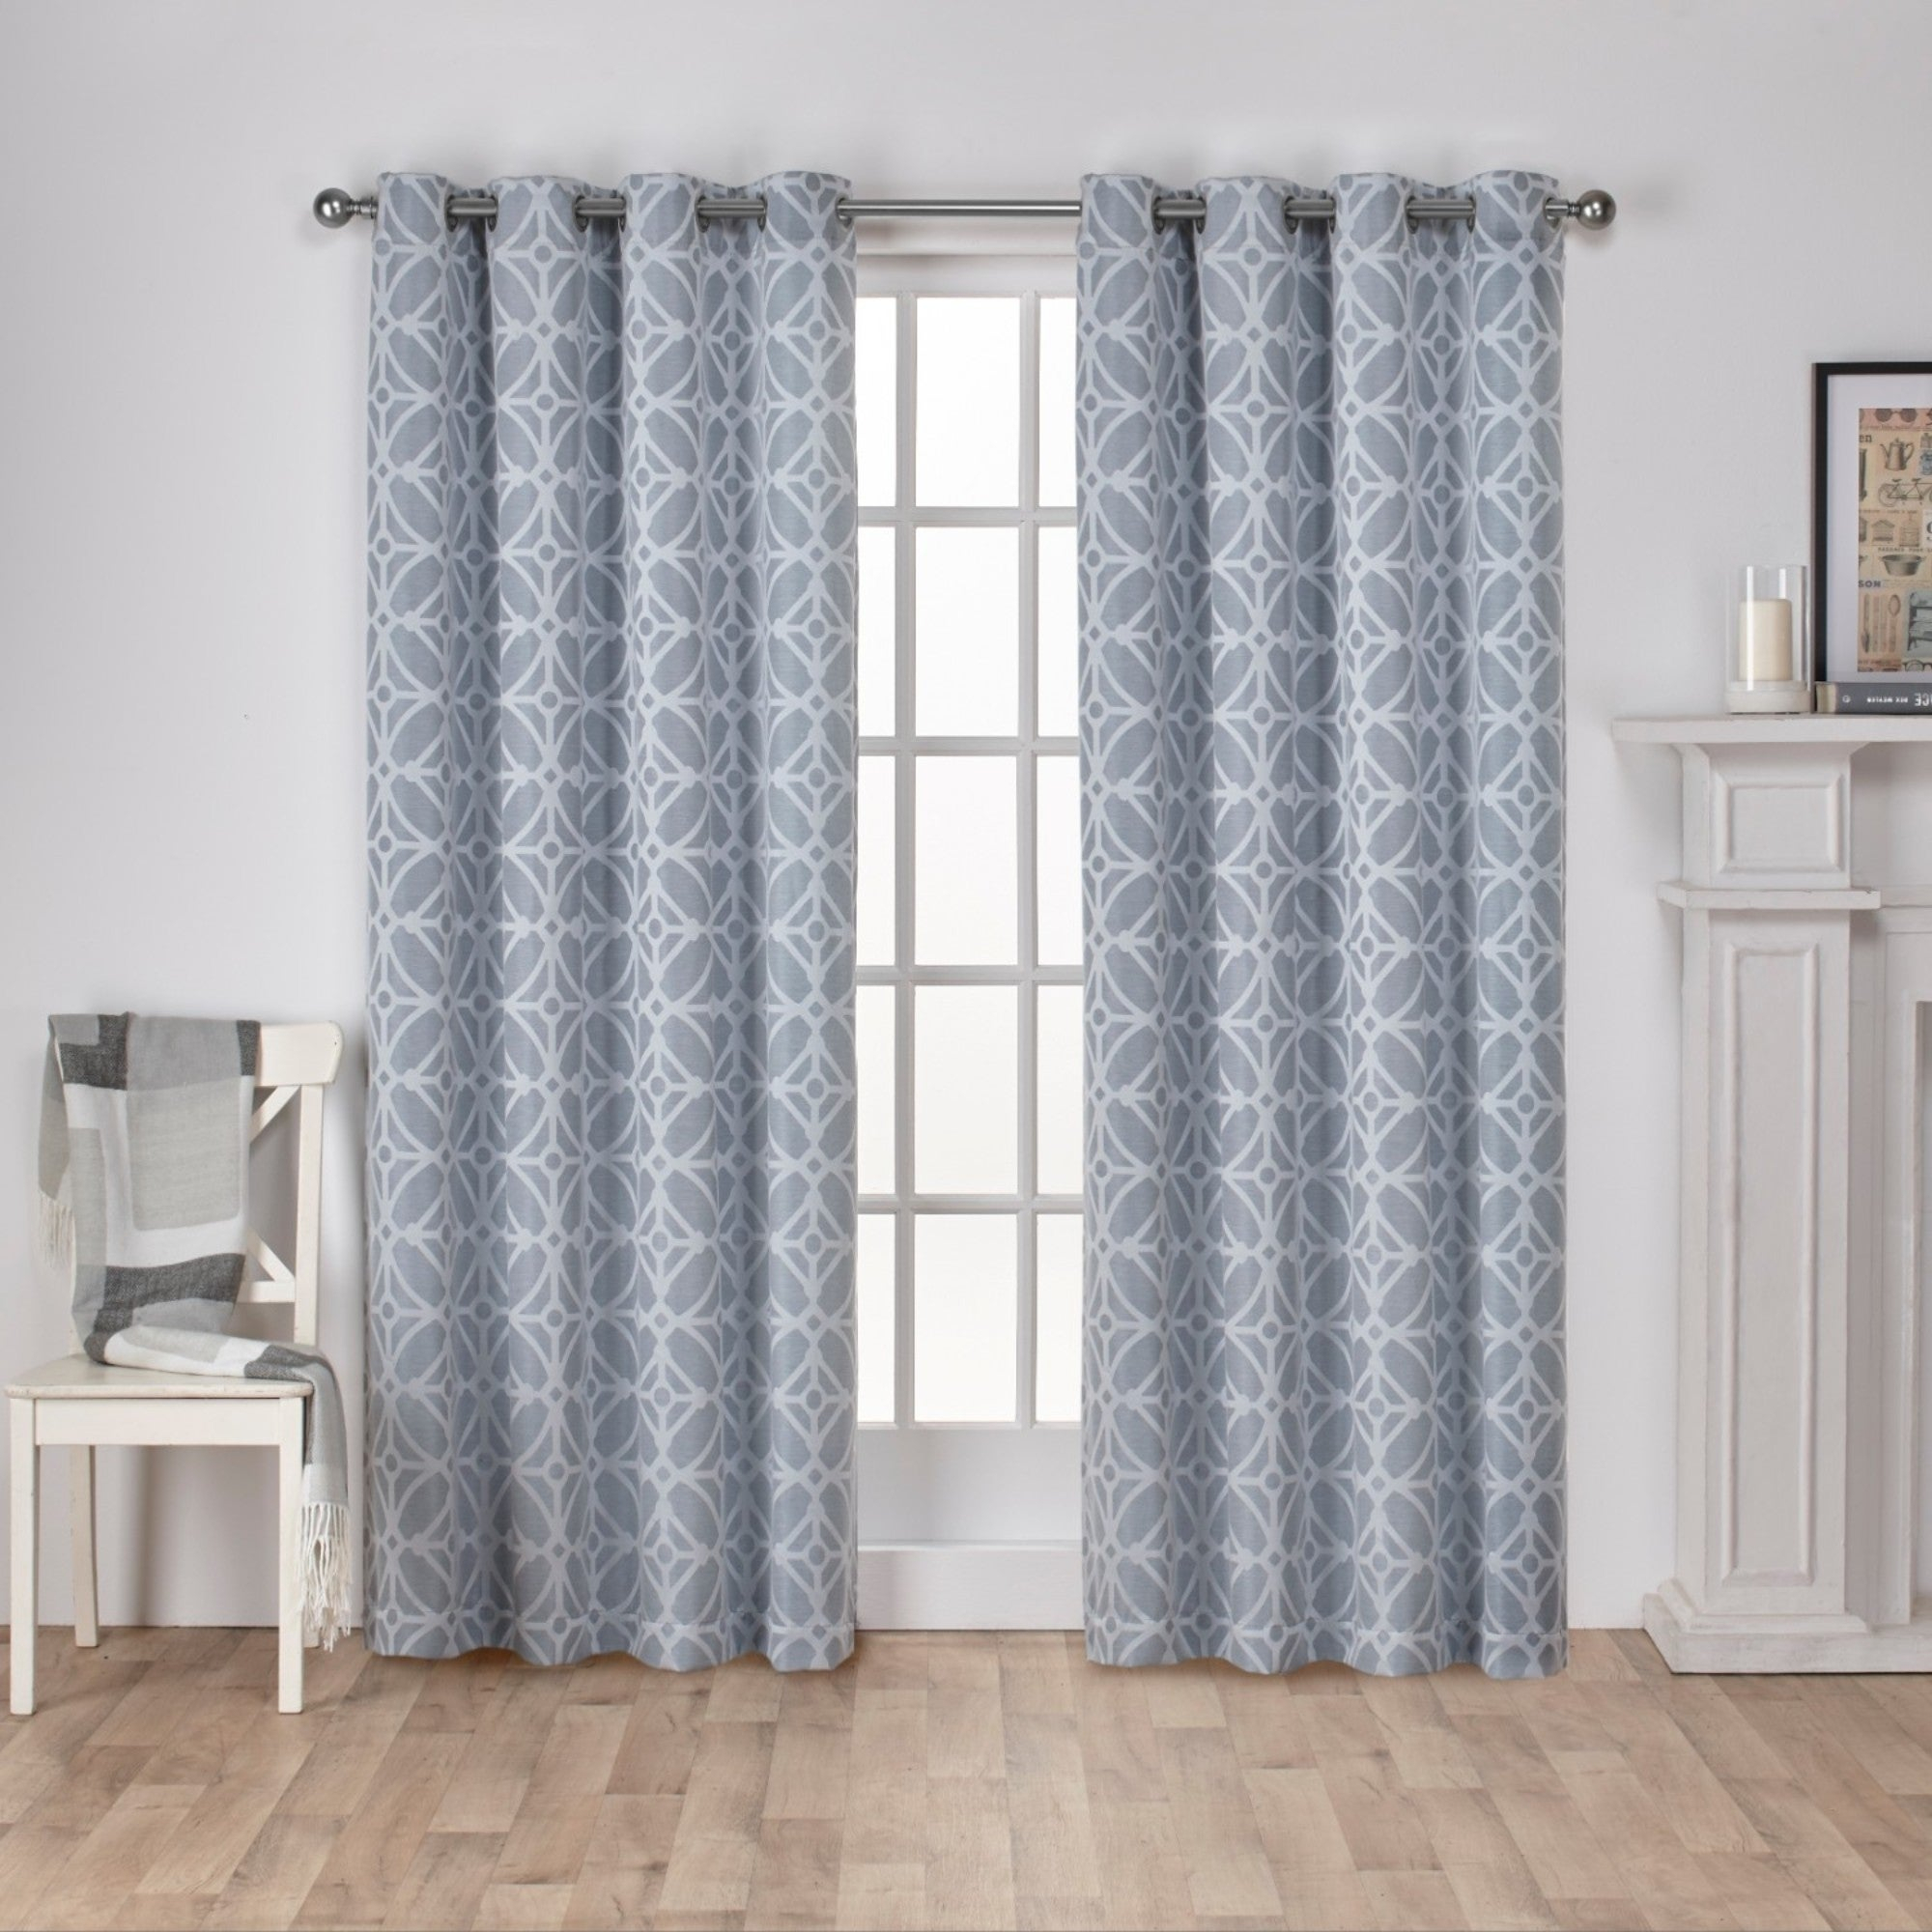 The Curated Nomad Market St Jacquard Grommet Top Curtain Panel Pair Throughout The Curated Nomad Duane Jacquard Grommet Top Curtain Panel Pairs (View 13 of 30)